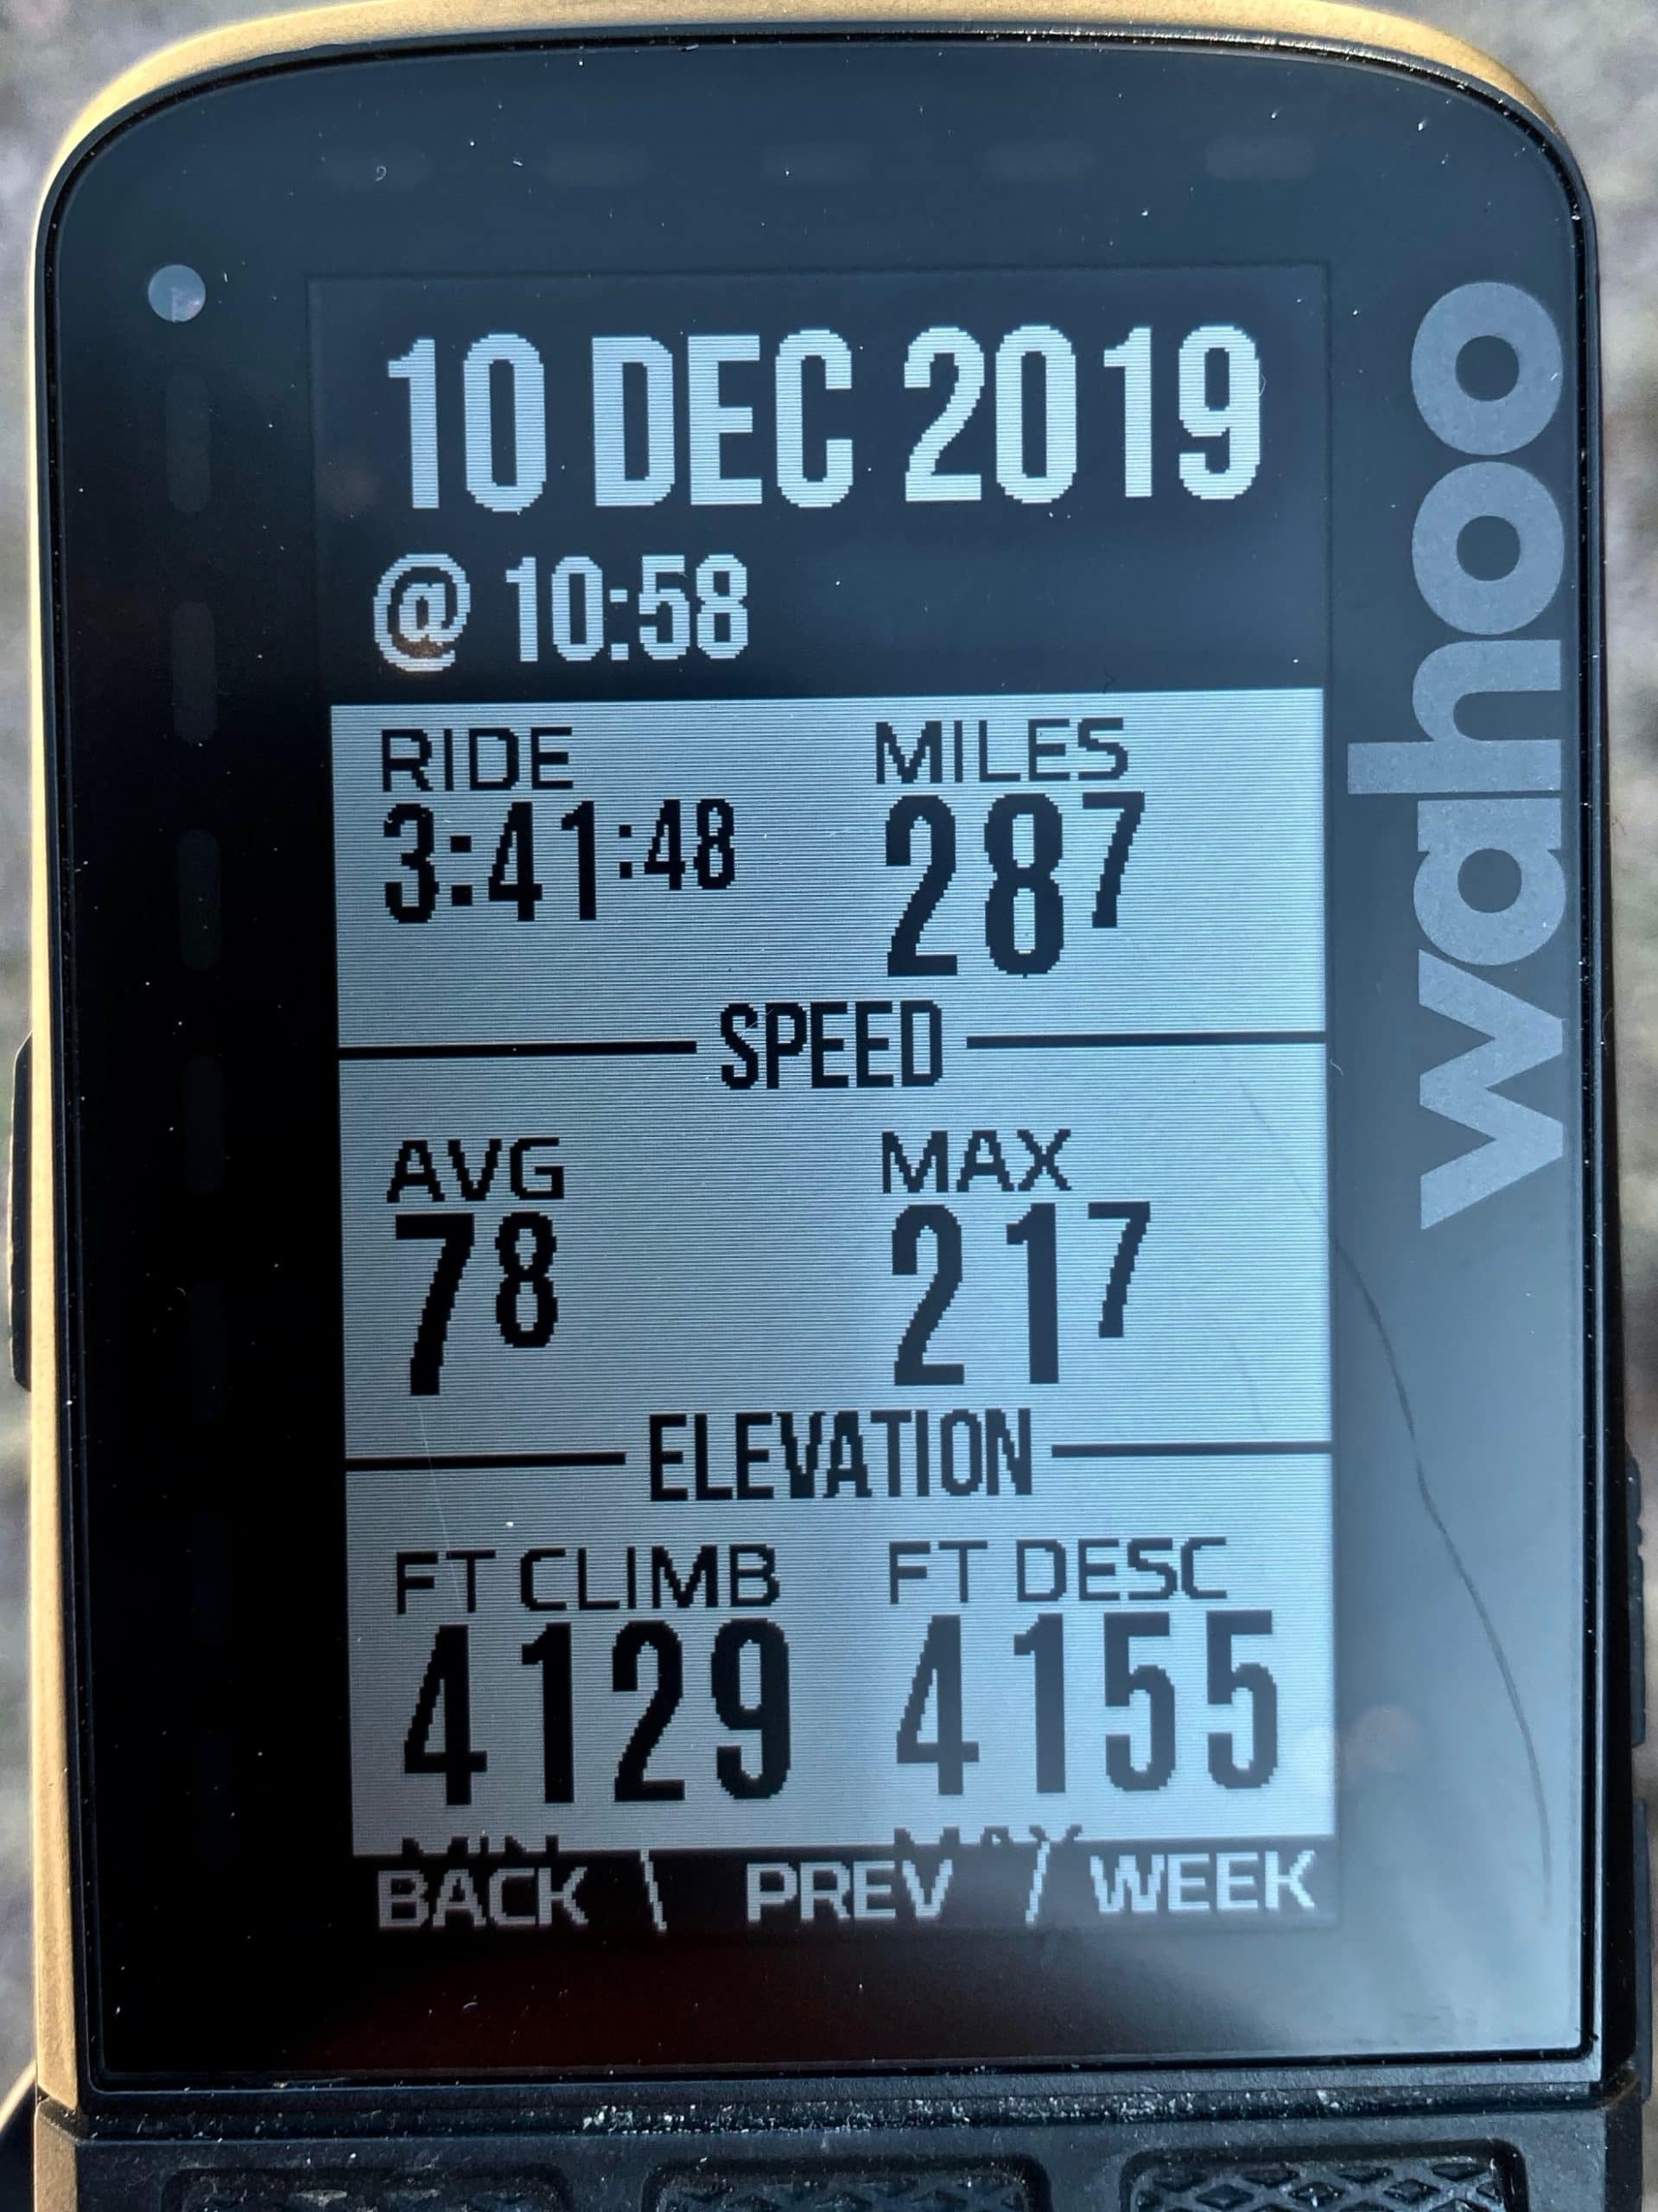 Ride metrics on Wahoo device for course on Ruby road south of Tucson, Arizona.